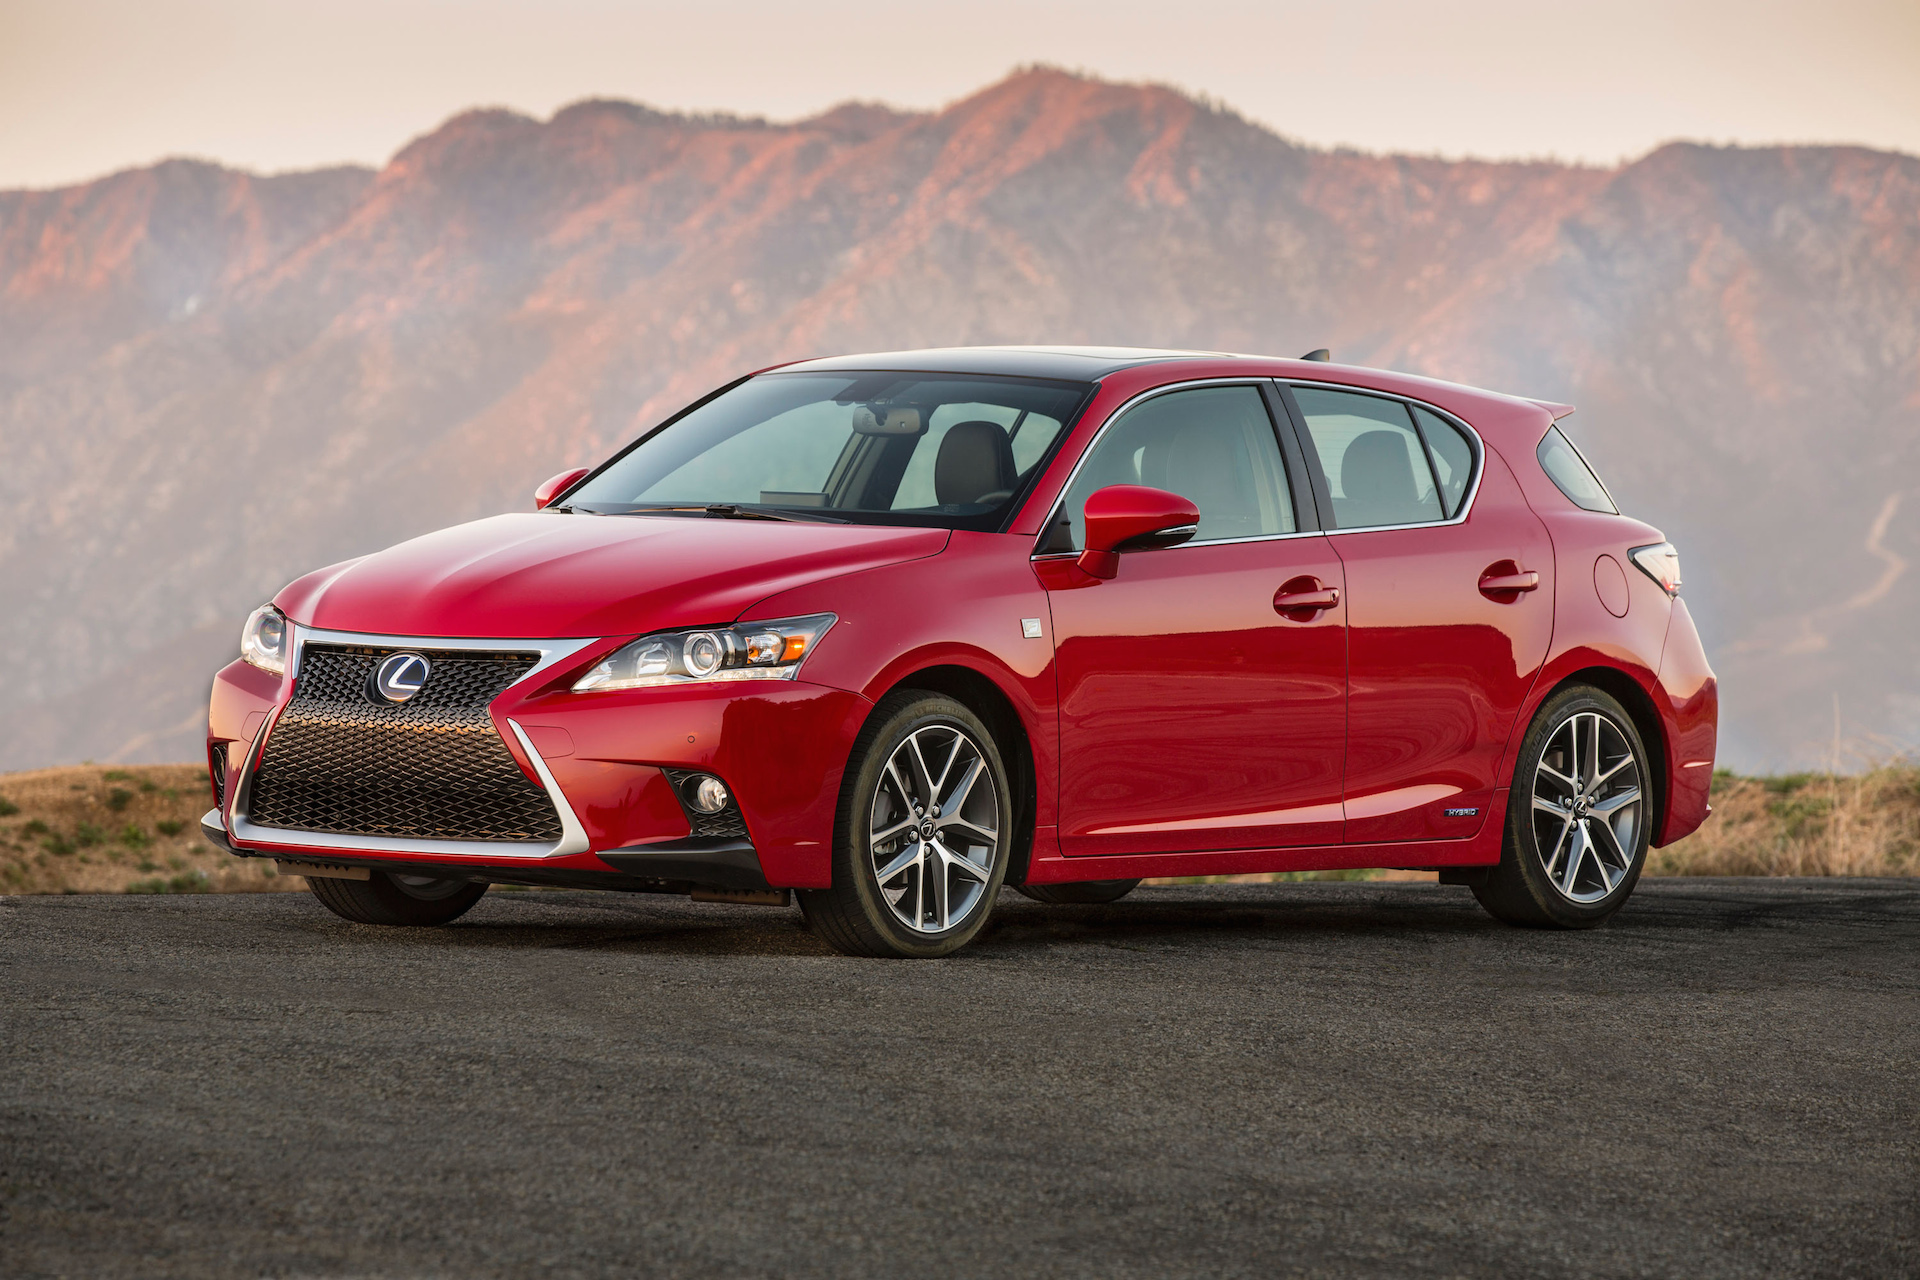 2015 Lexus CT 200h Review, Ratings, Specs, Prices, and Photos - The ...